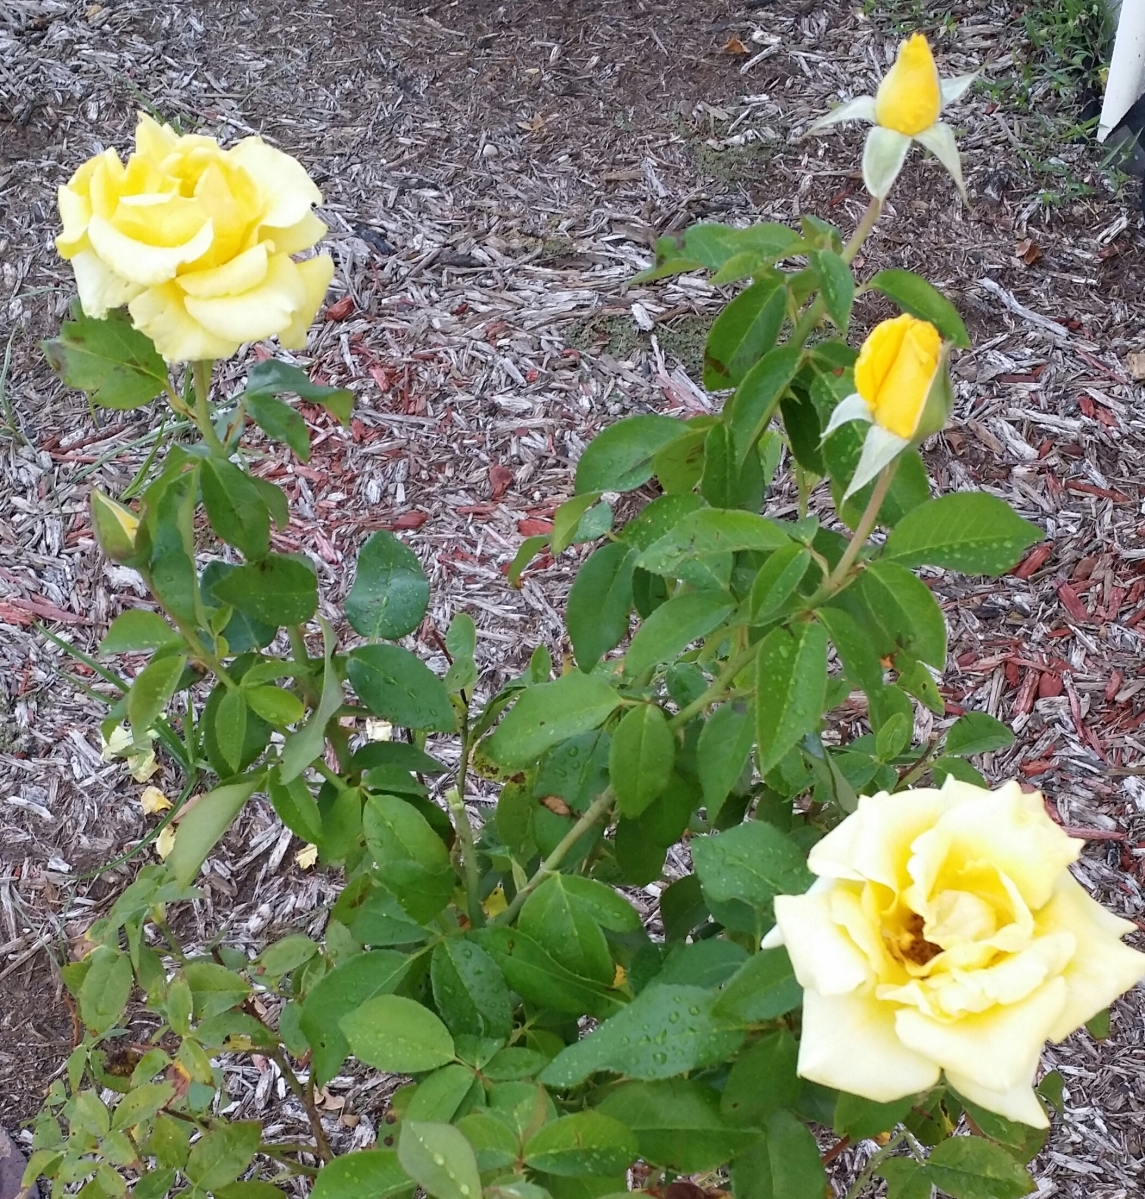 'Grandma's Yellow' Rose, Oct. 2014